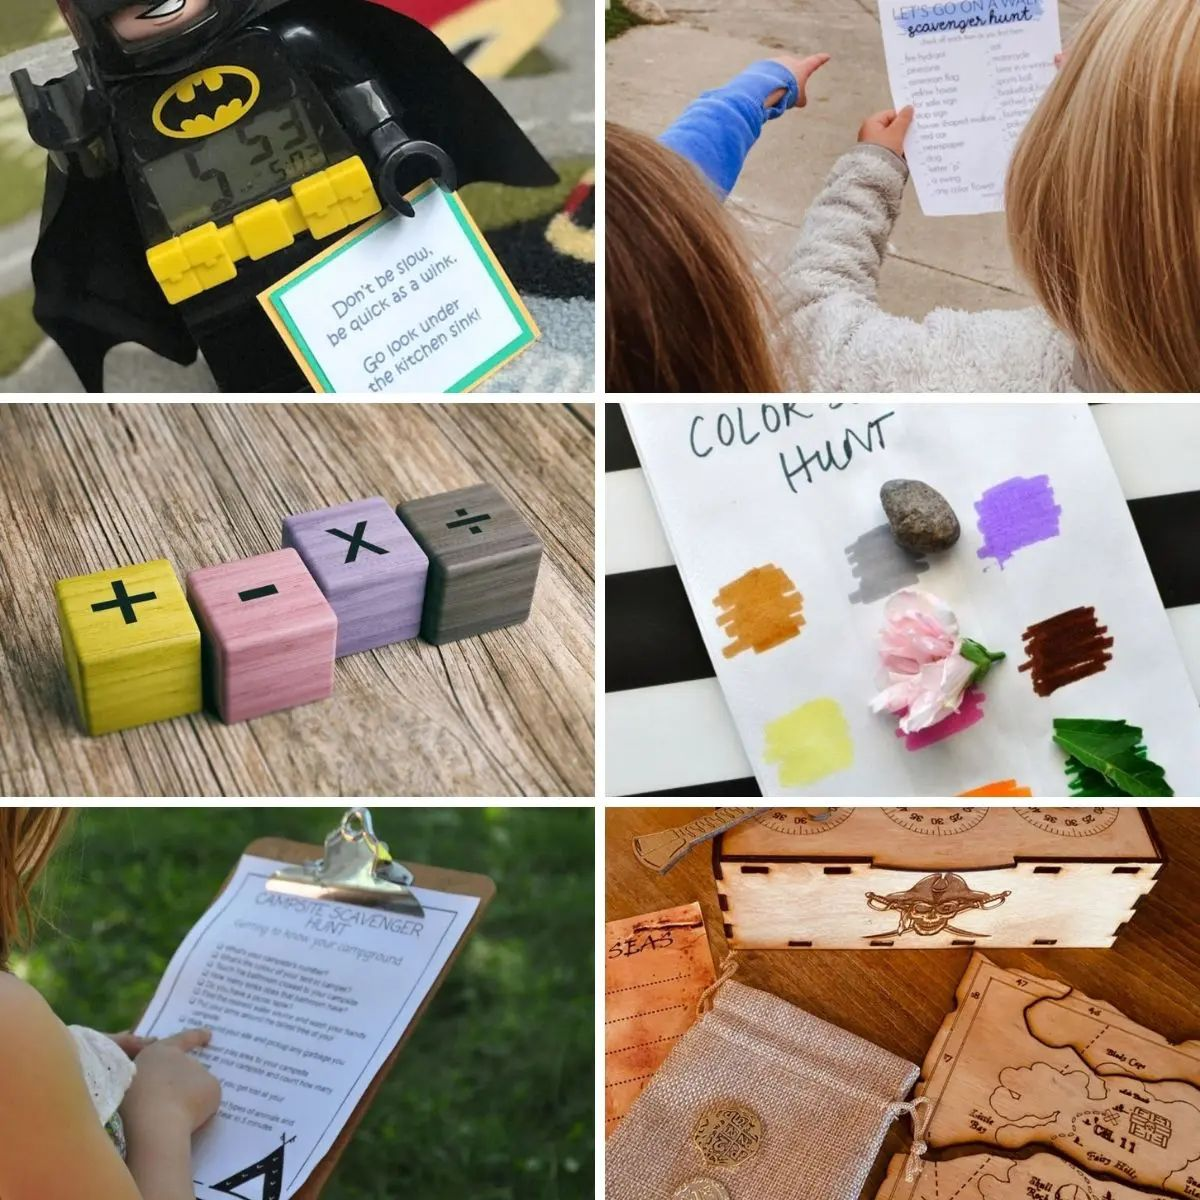 6 photos of different types of scavenger hunt activities.